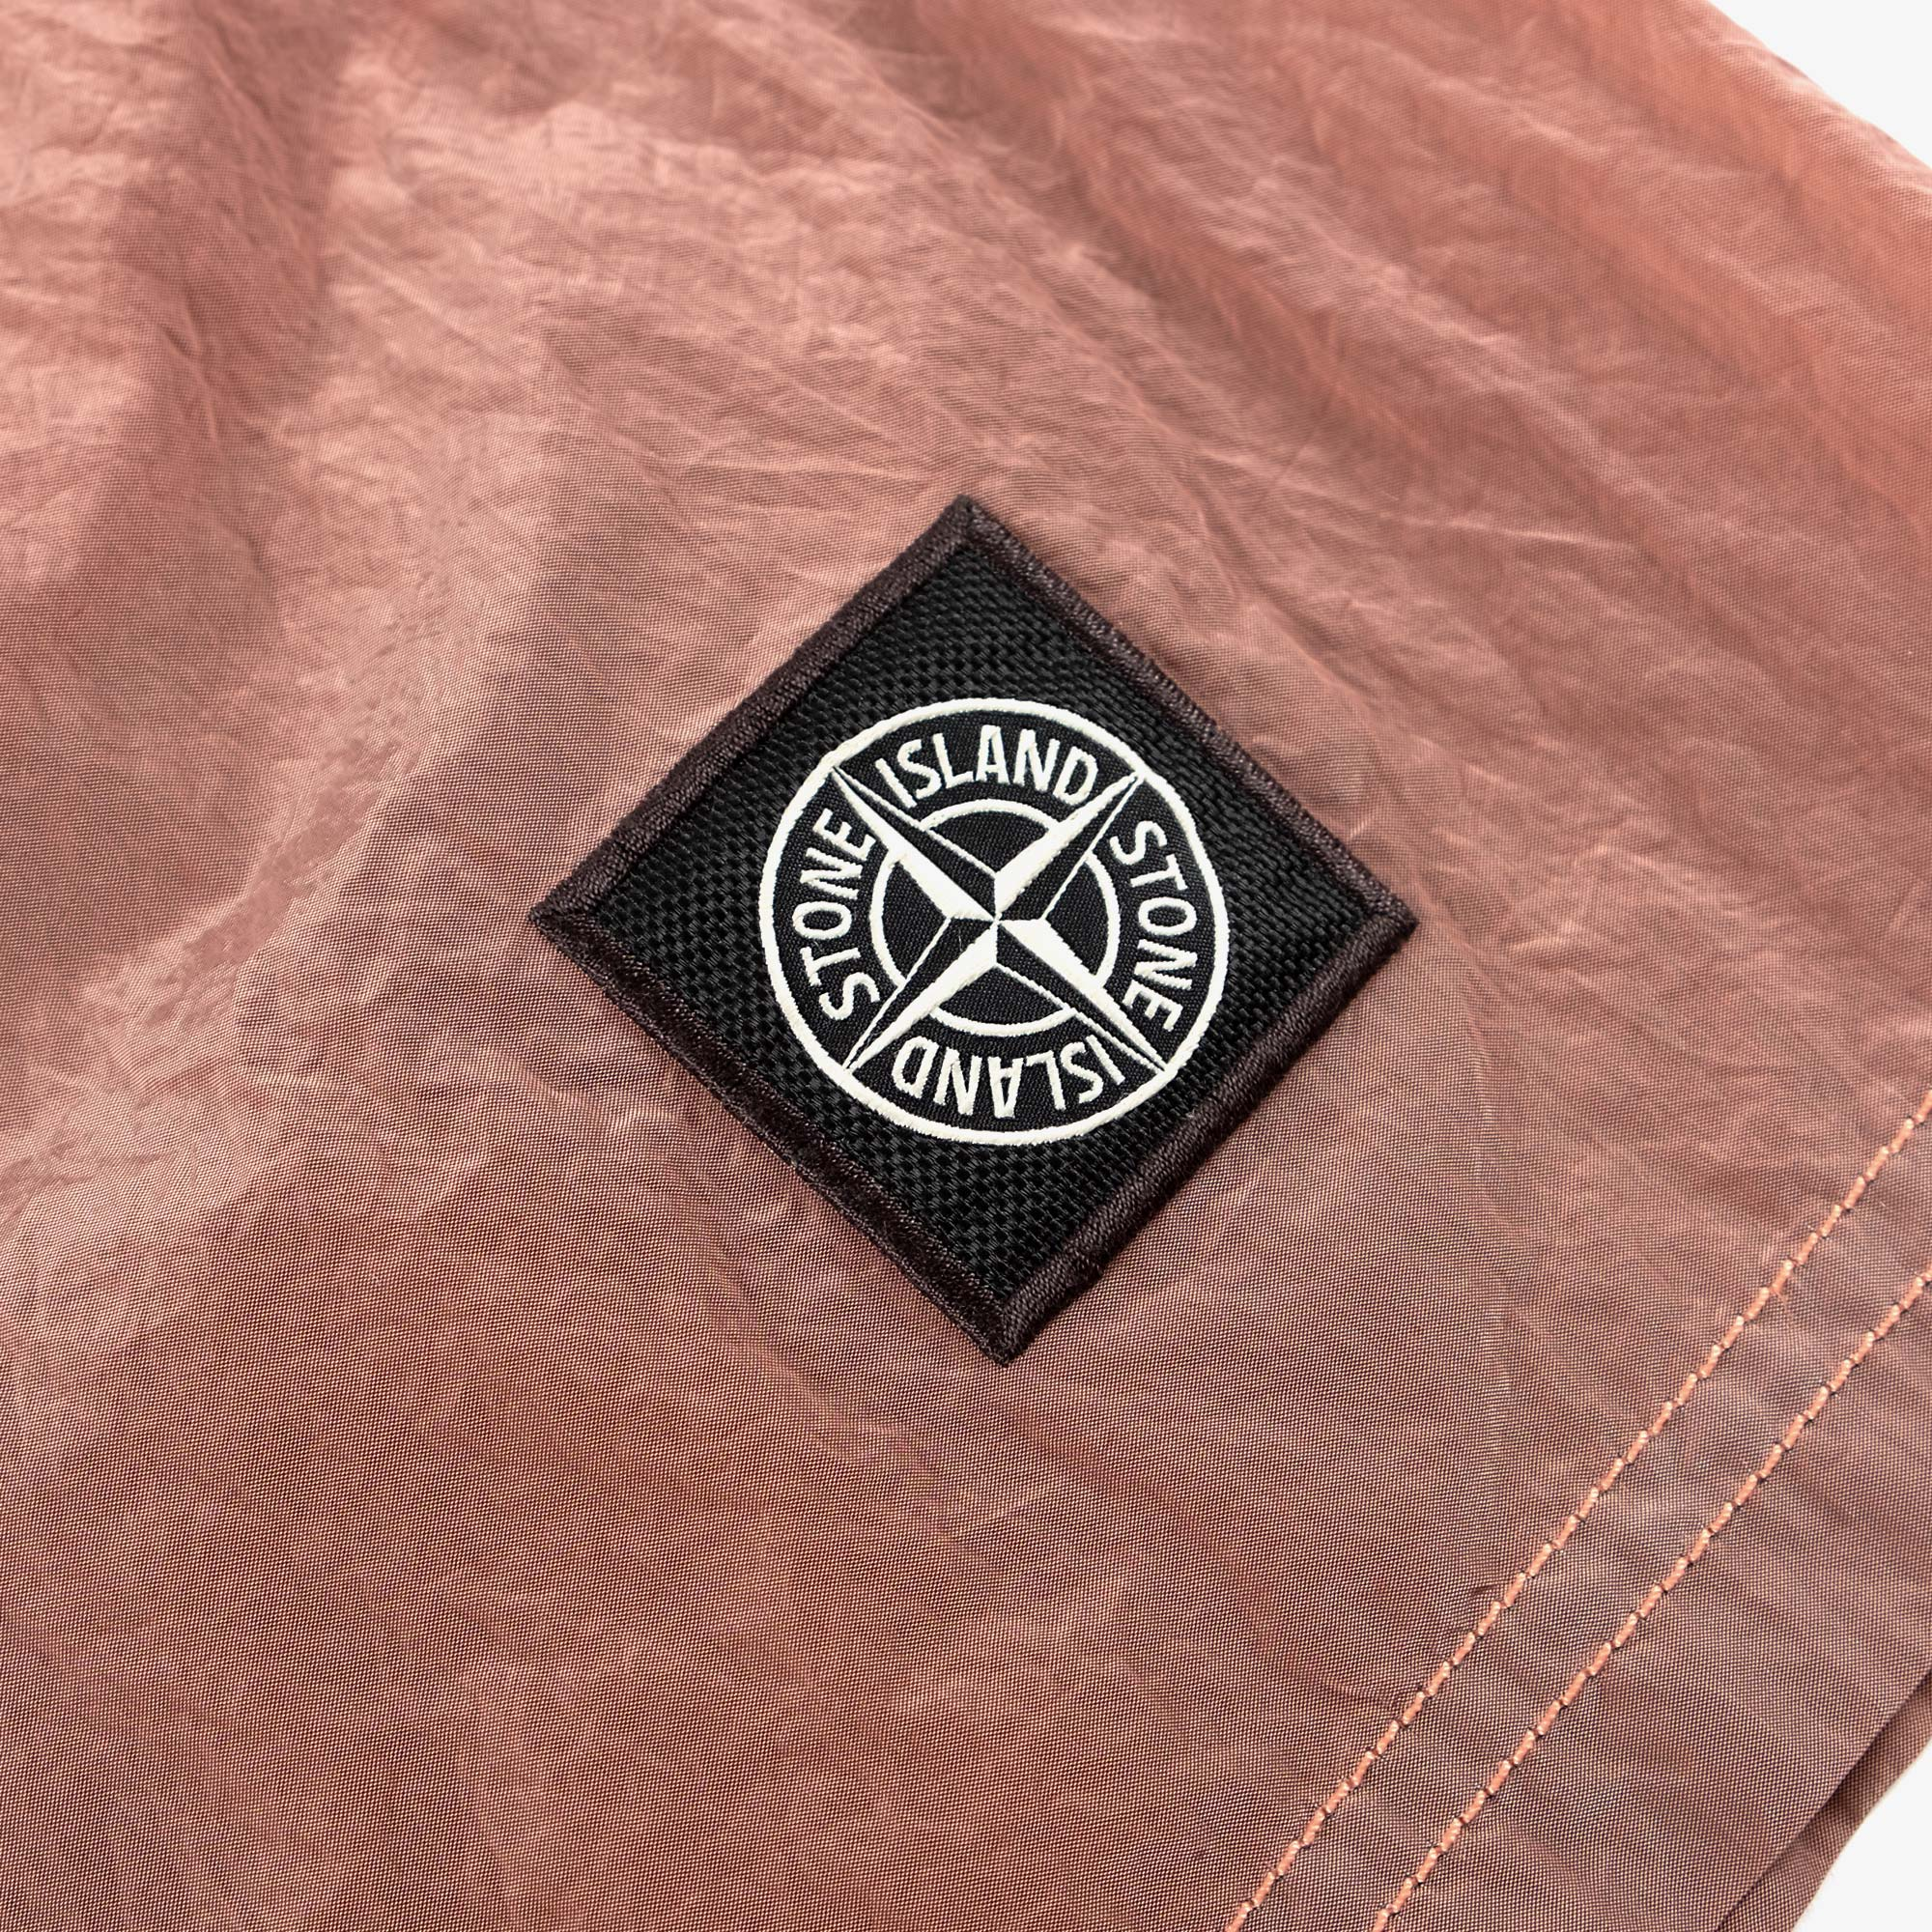 Stone Island Nylon Metal Swim Shorts 7415B0943 Shorts - Rose Quartz 3